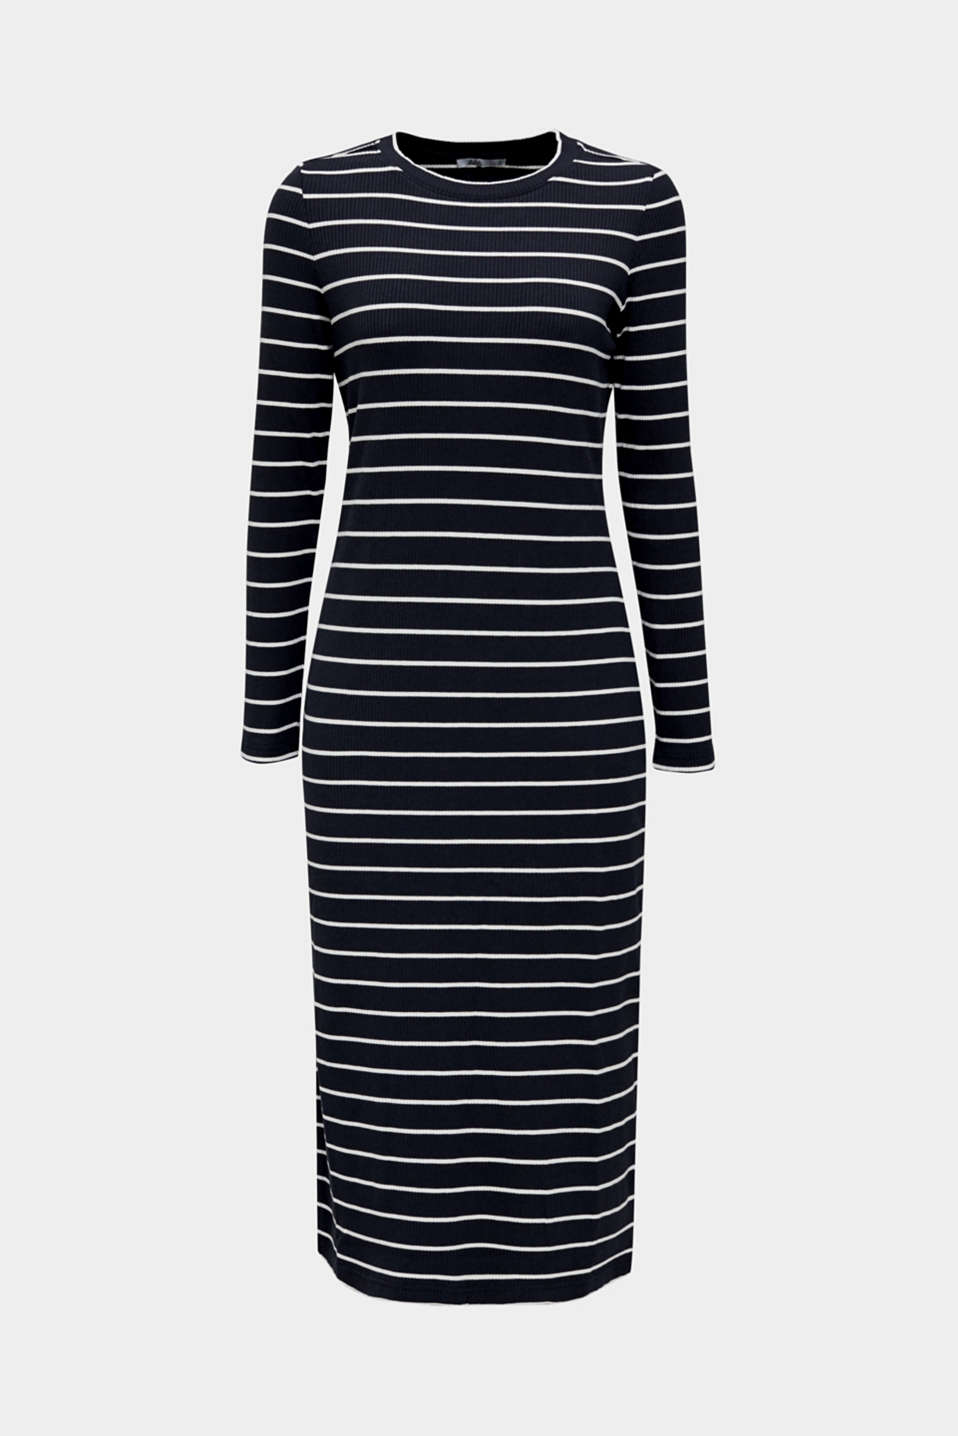 Stretch jersey dress with stripes and texture, NAVY, detail image number 7